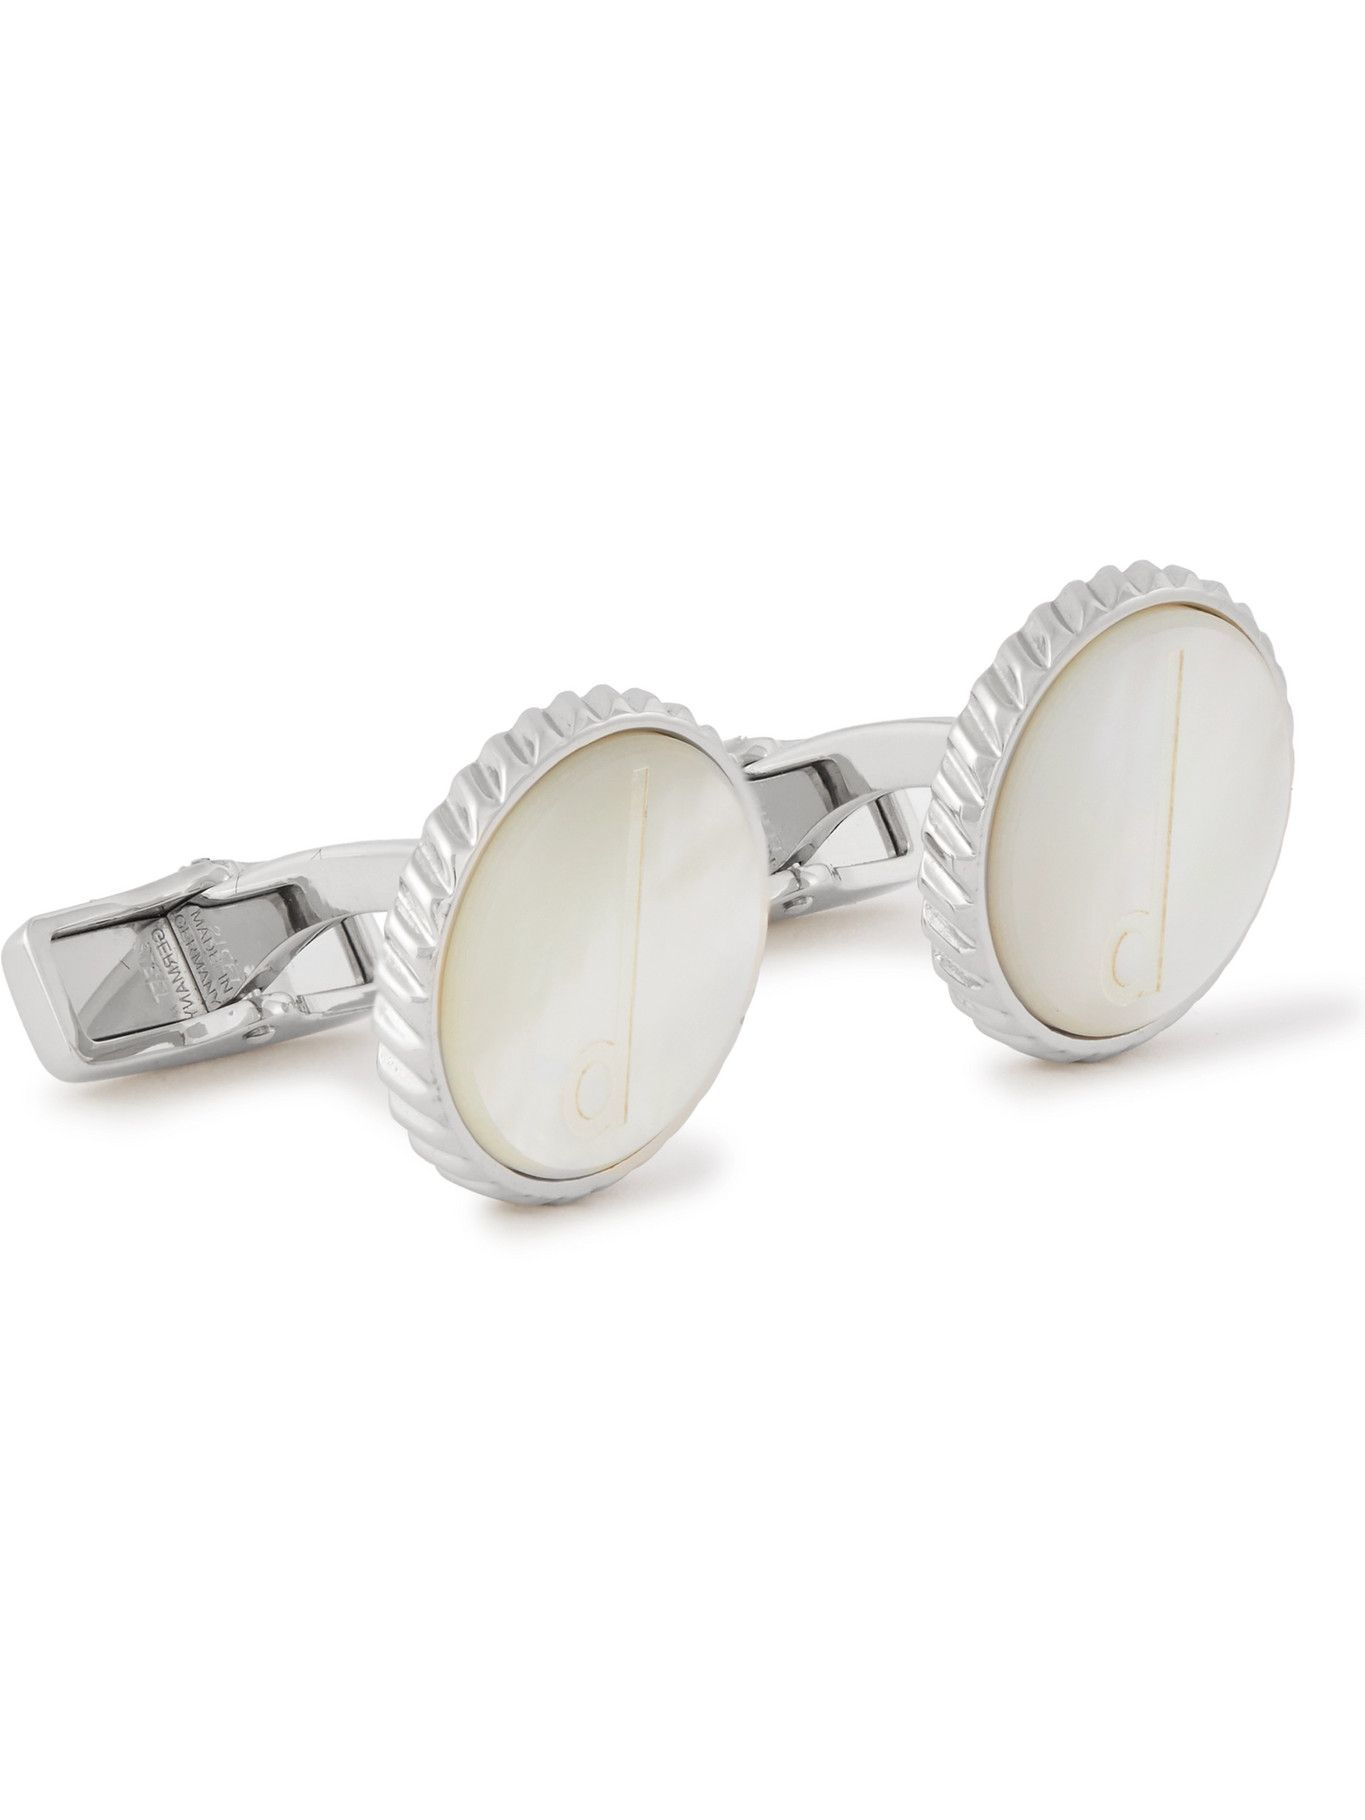 DUNHILL - Engraved Mother-of-Pearl and Steel Cufflinks